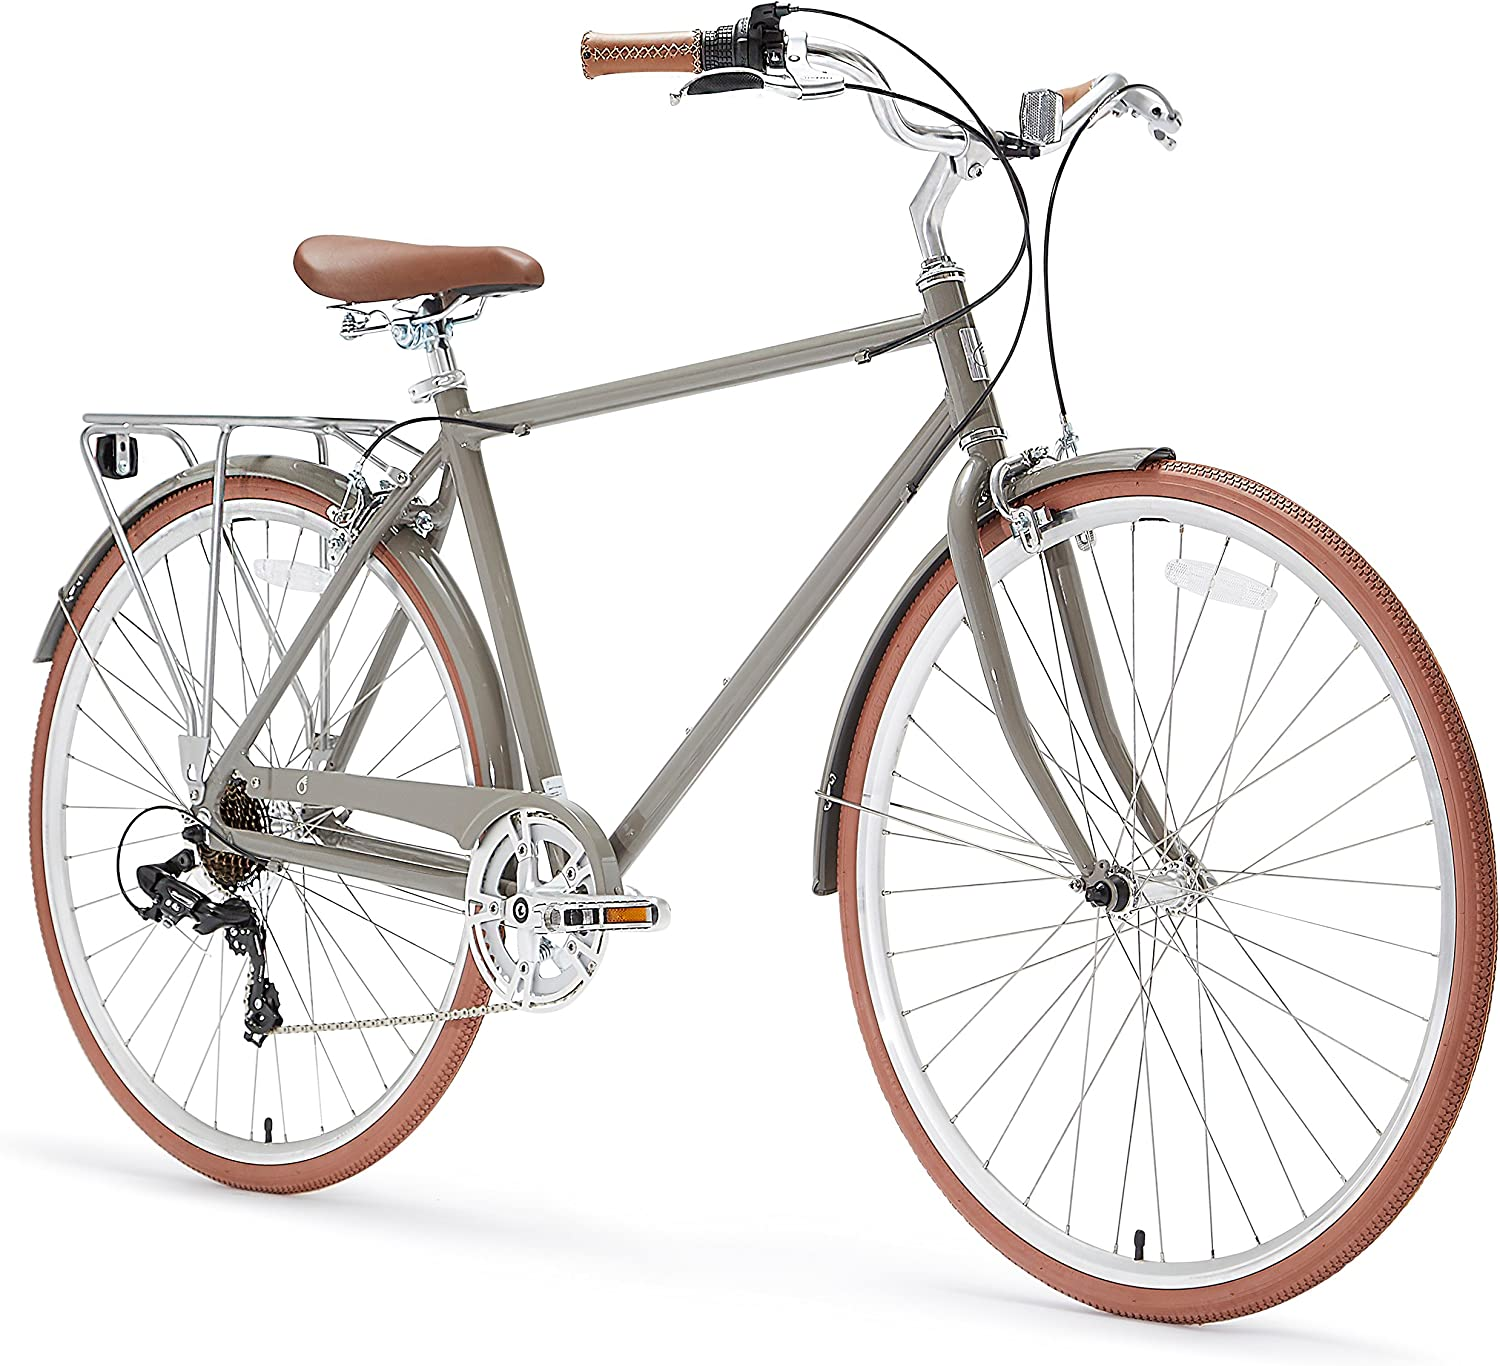 Sixthreezero 630051 Ride in The Park Men's 7Speed City Bicycle, 20  One Size Frame 700C Wheels, Grey